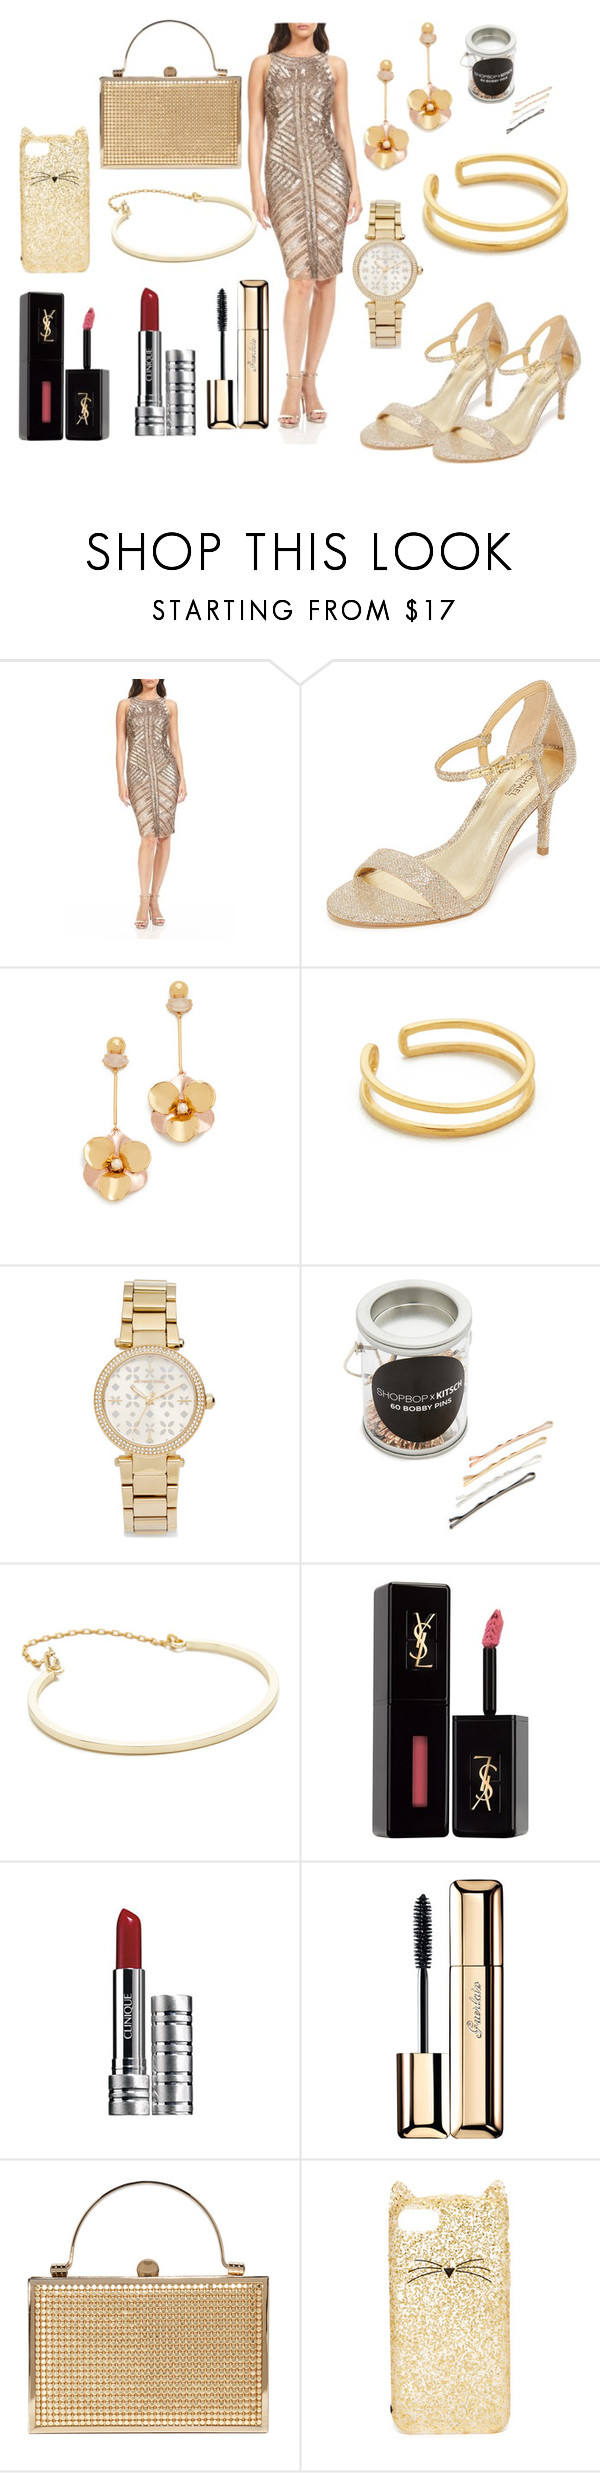 """""""Glittering Gold"""" by hillarymaguire ❤ liked on Polyvore featuring Theia, MICHAEL Michael Kors, Kate Spade, Maya Magal, Michael Kors, Kitsch, Madewell, Yves Saint Laurent, Clinique and Guerlain"""